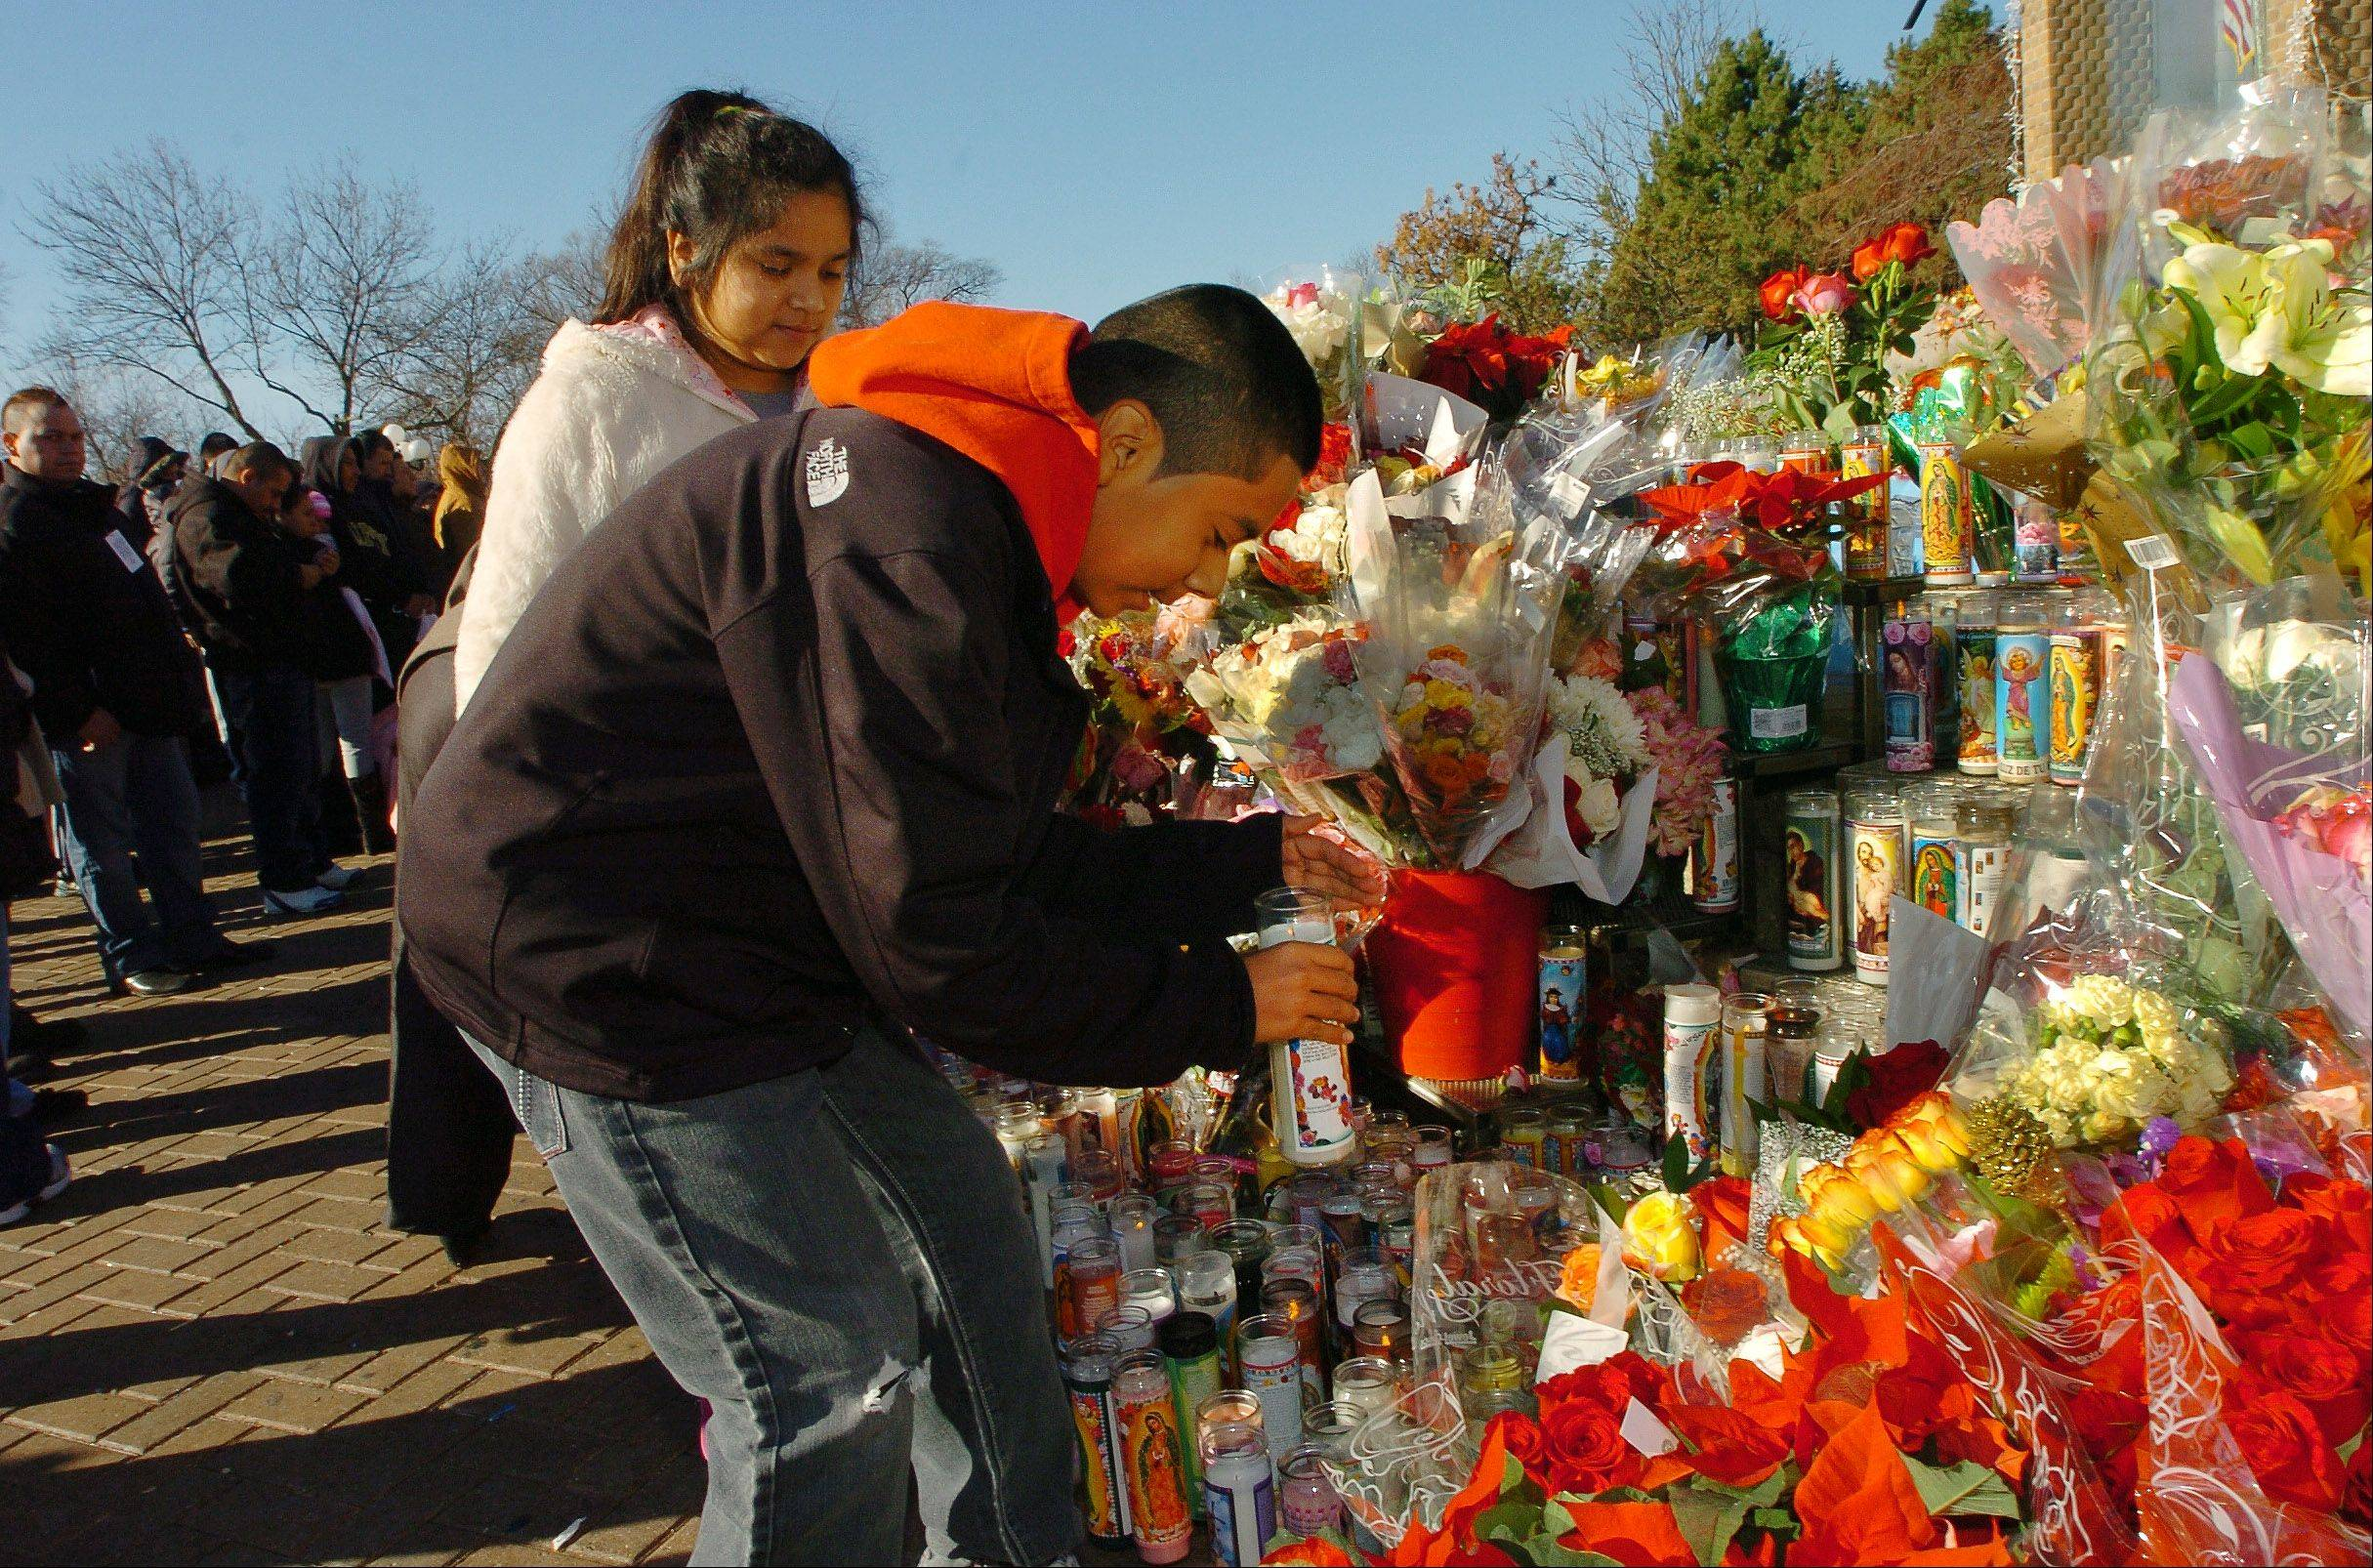 Maurilio Barrera of Chicago and his sister Erica light a candle at the Our Lady of Guadalupe shrine in Des Plaines.